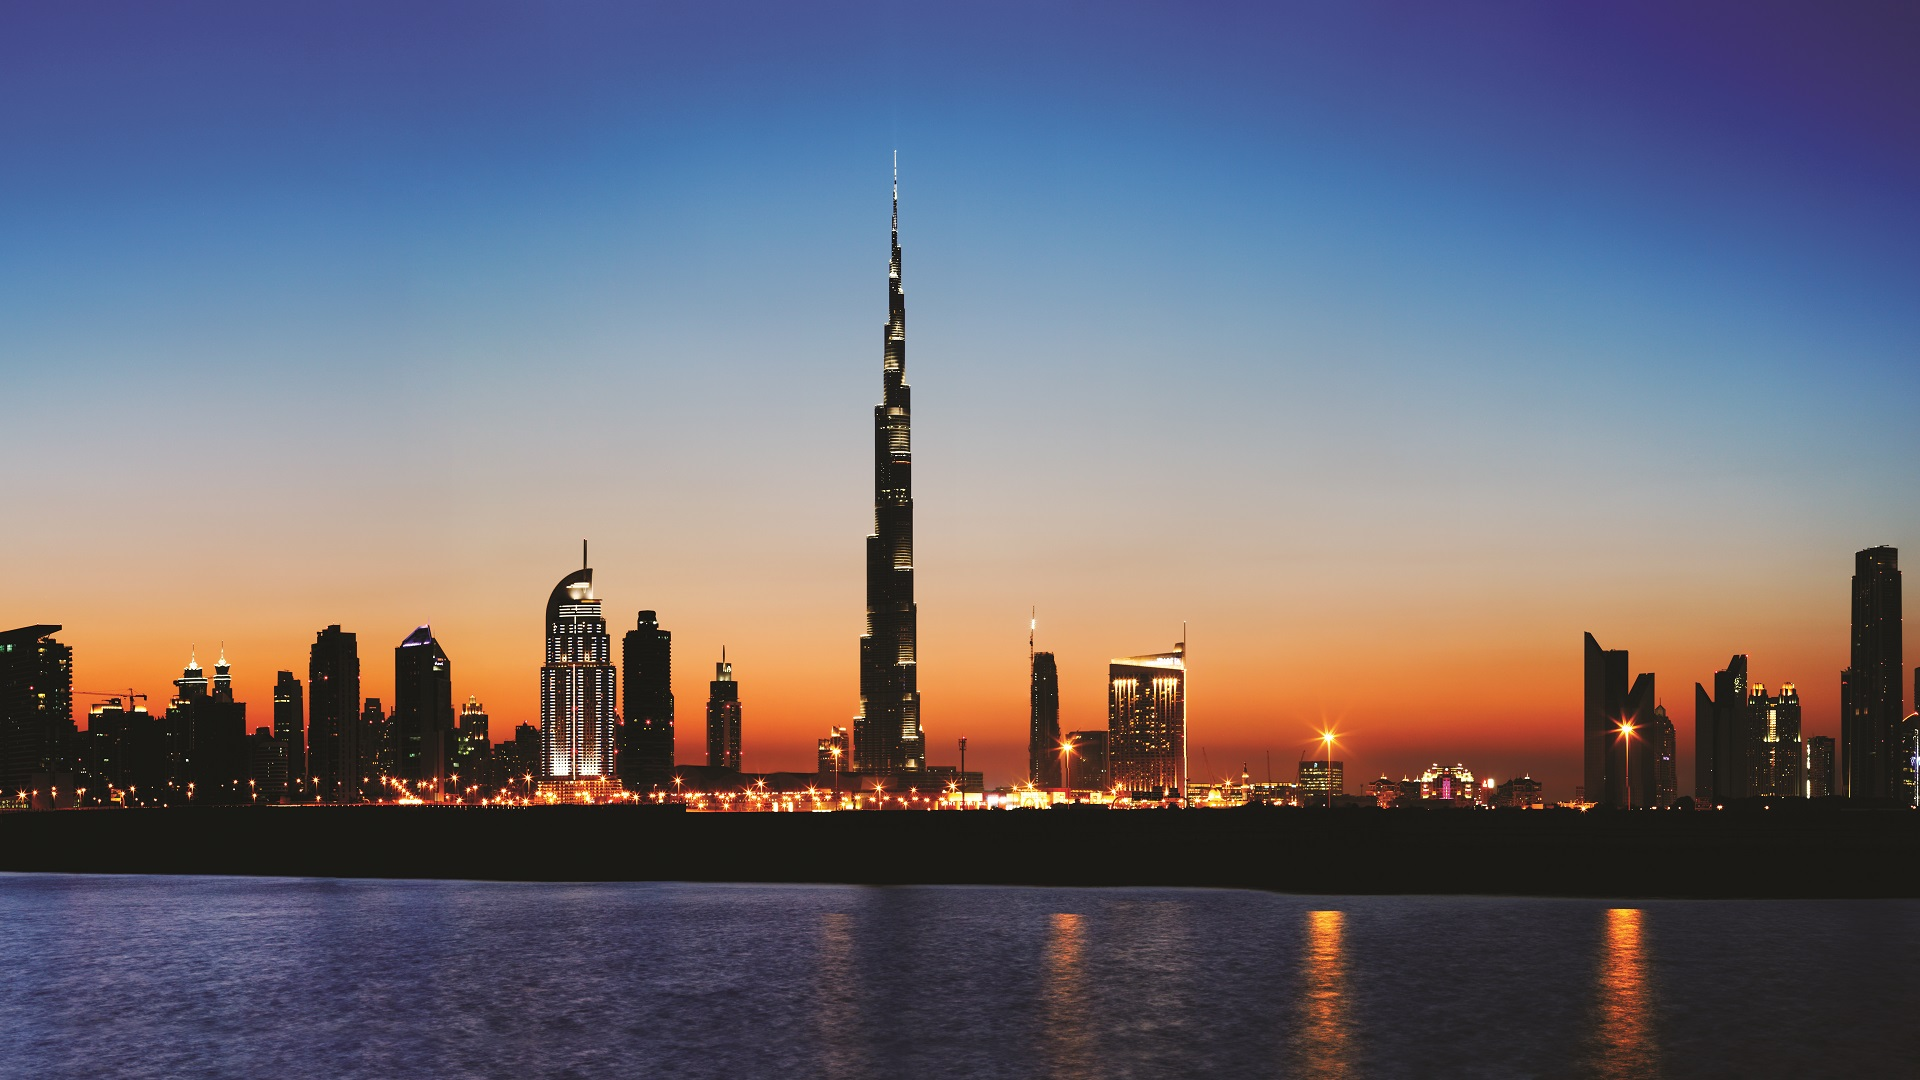 burj khalifa hd wallpaper background